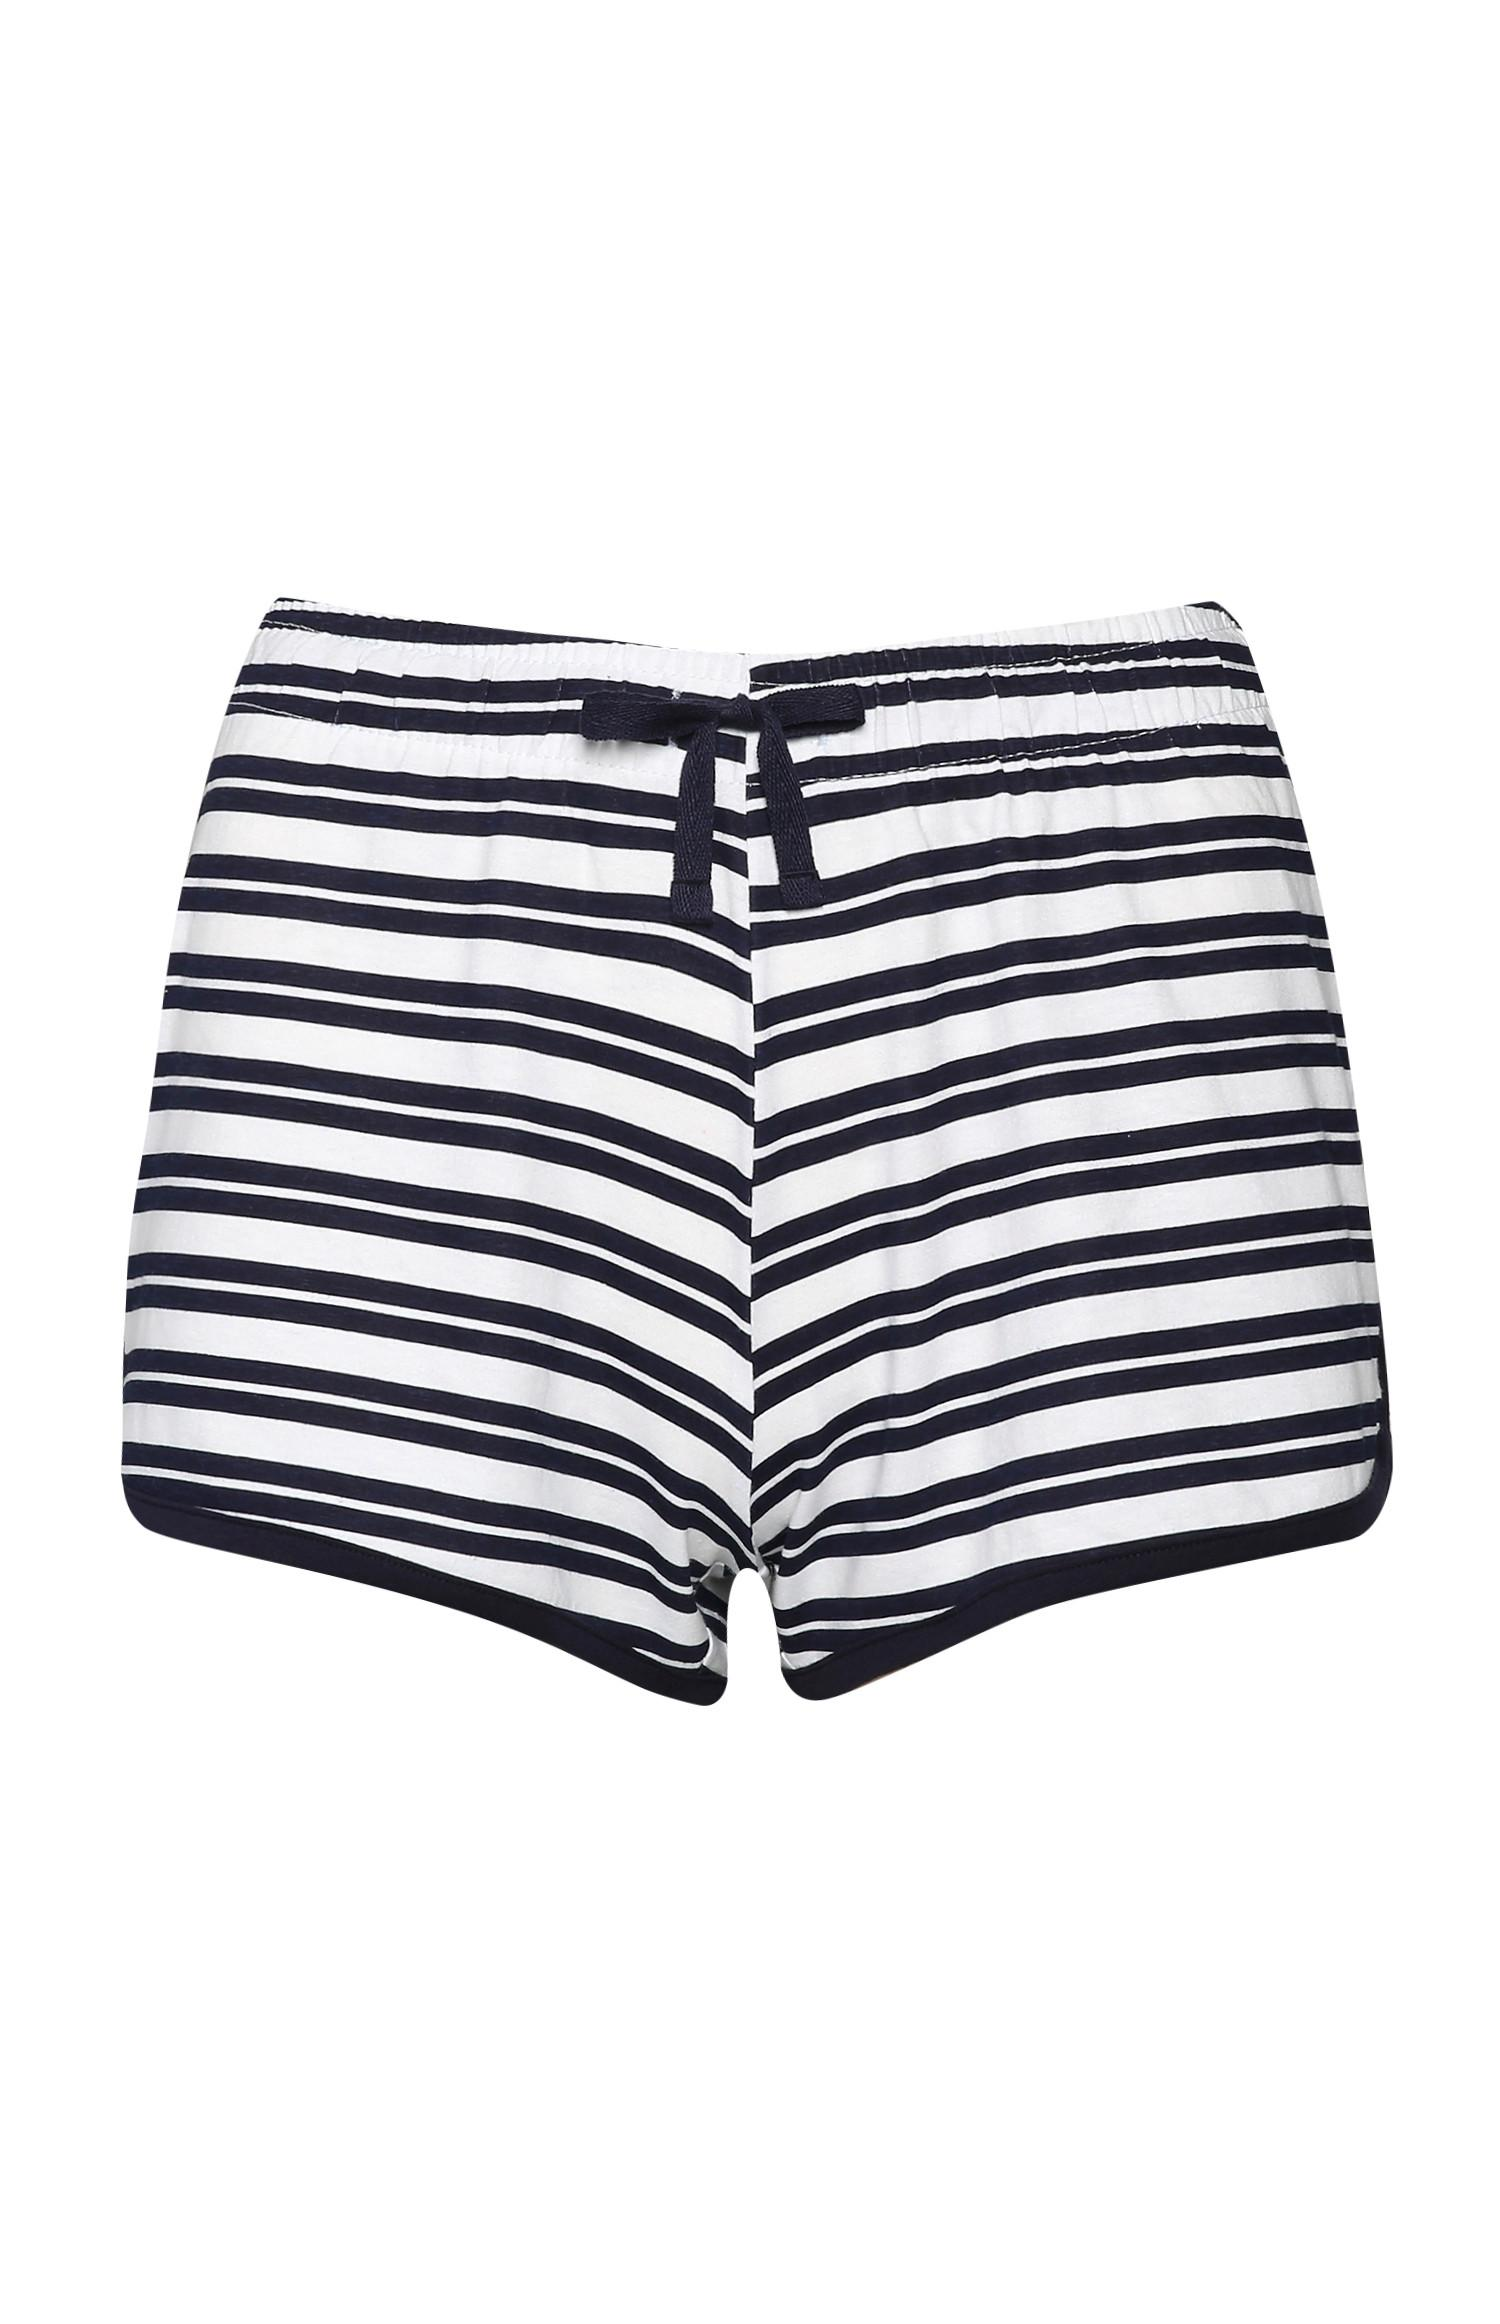 Shorts a righe blu navy